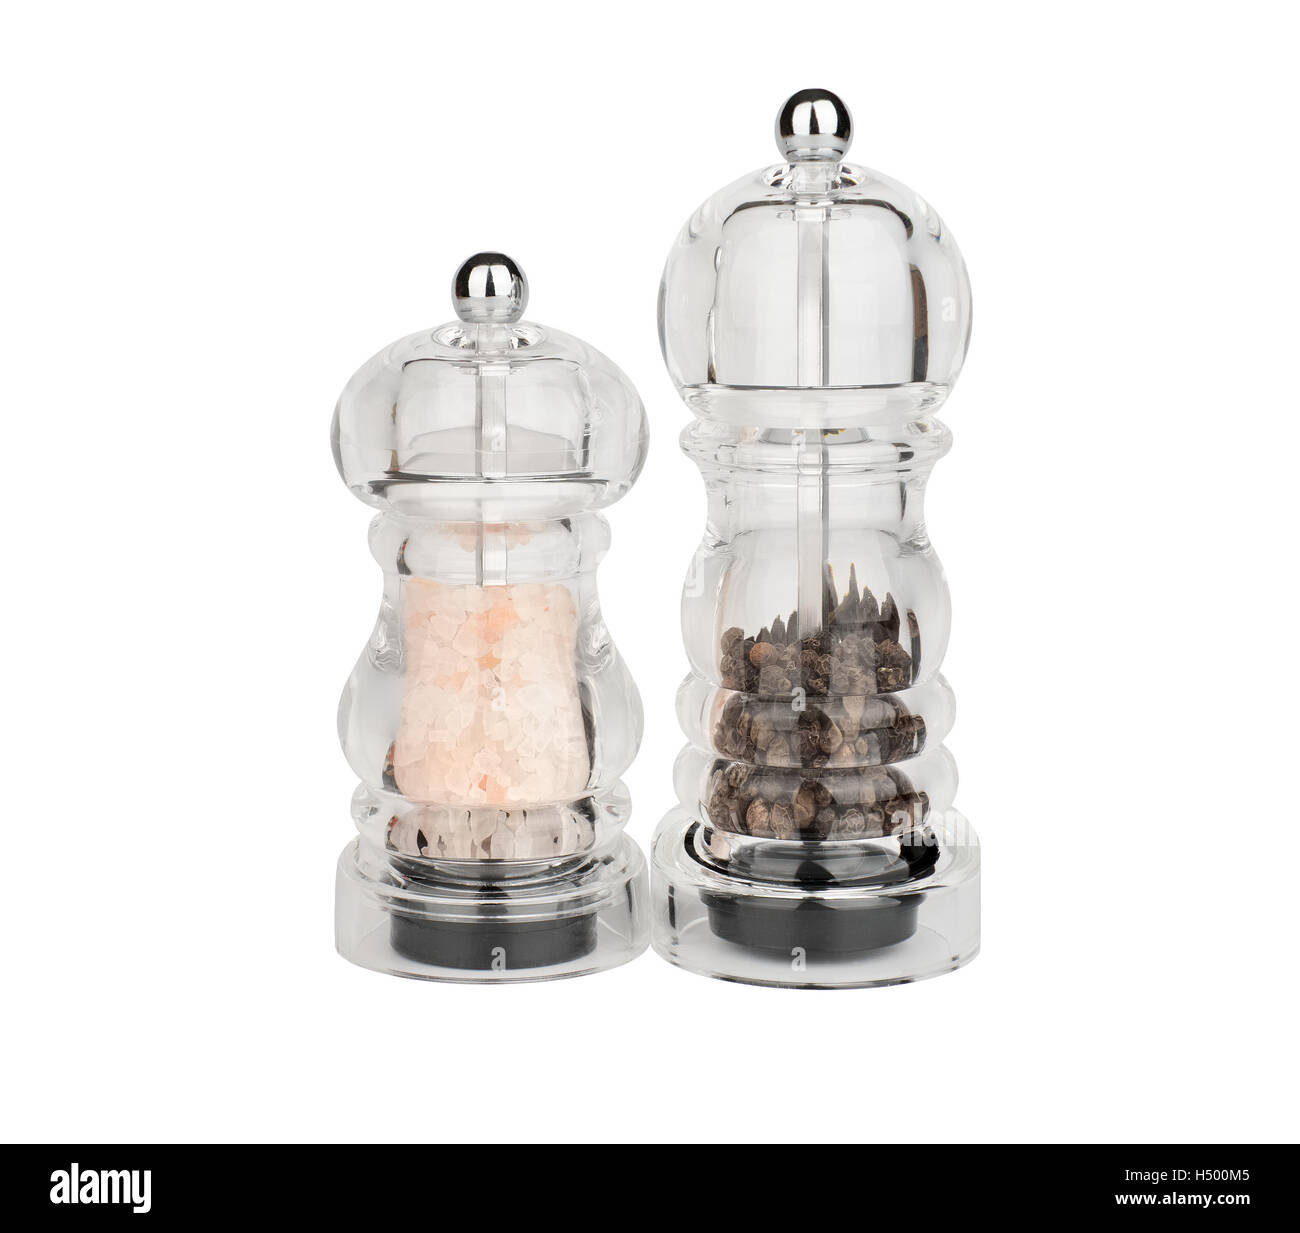 mills for salt and pepper of plastic on a white background - Stock Image